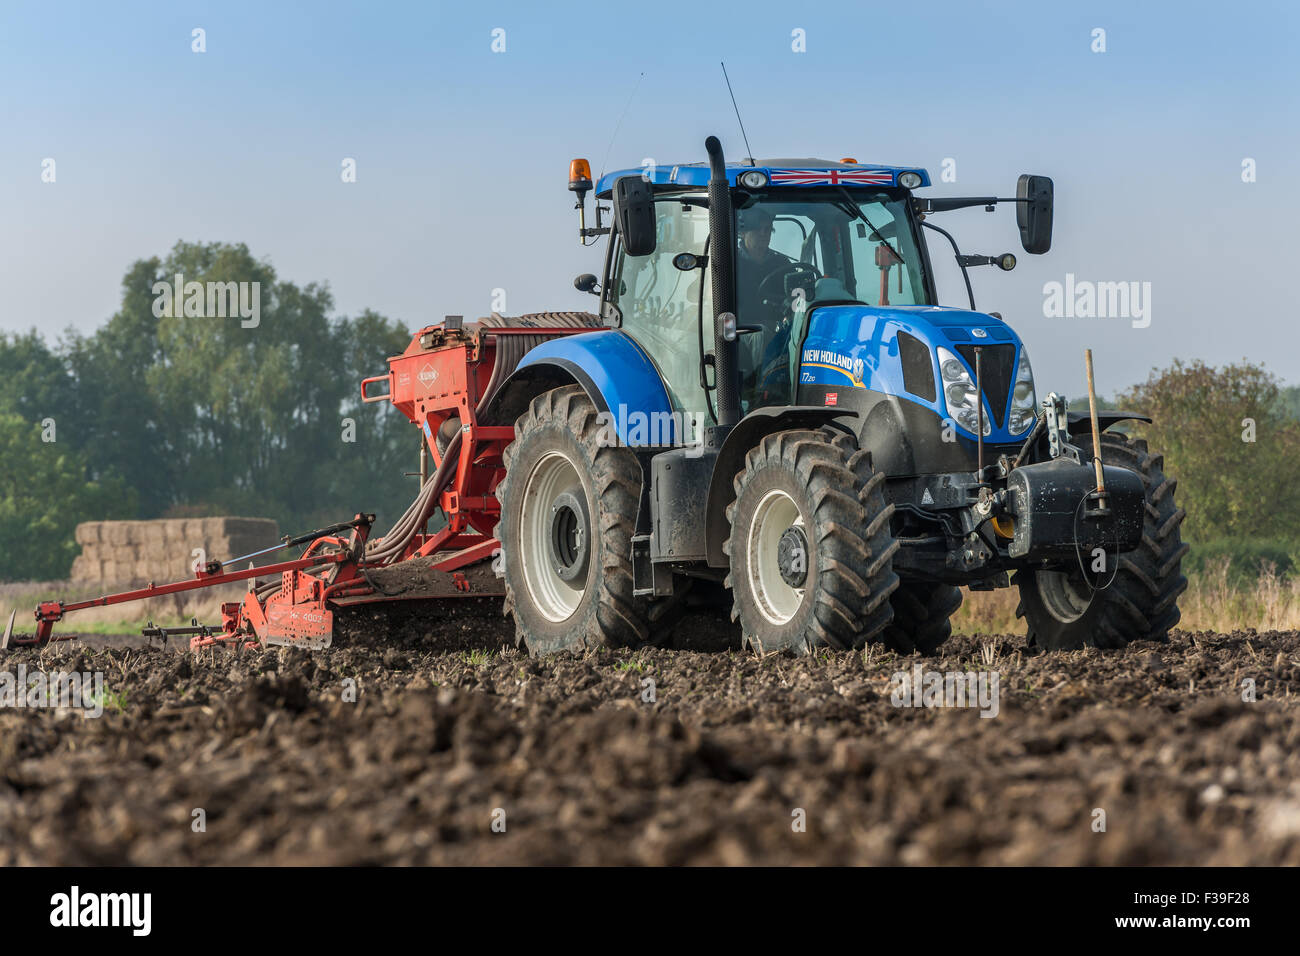 Tractor at Work - Stock Image